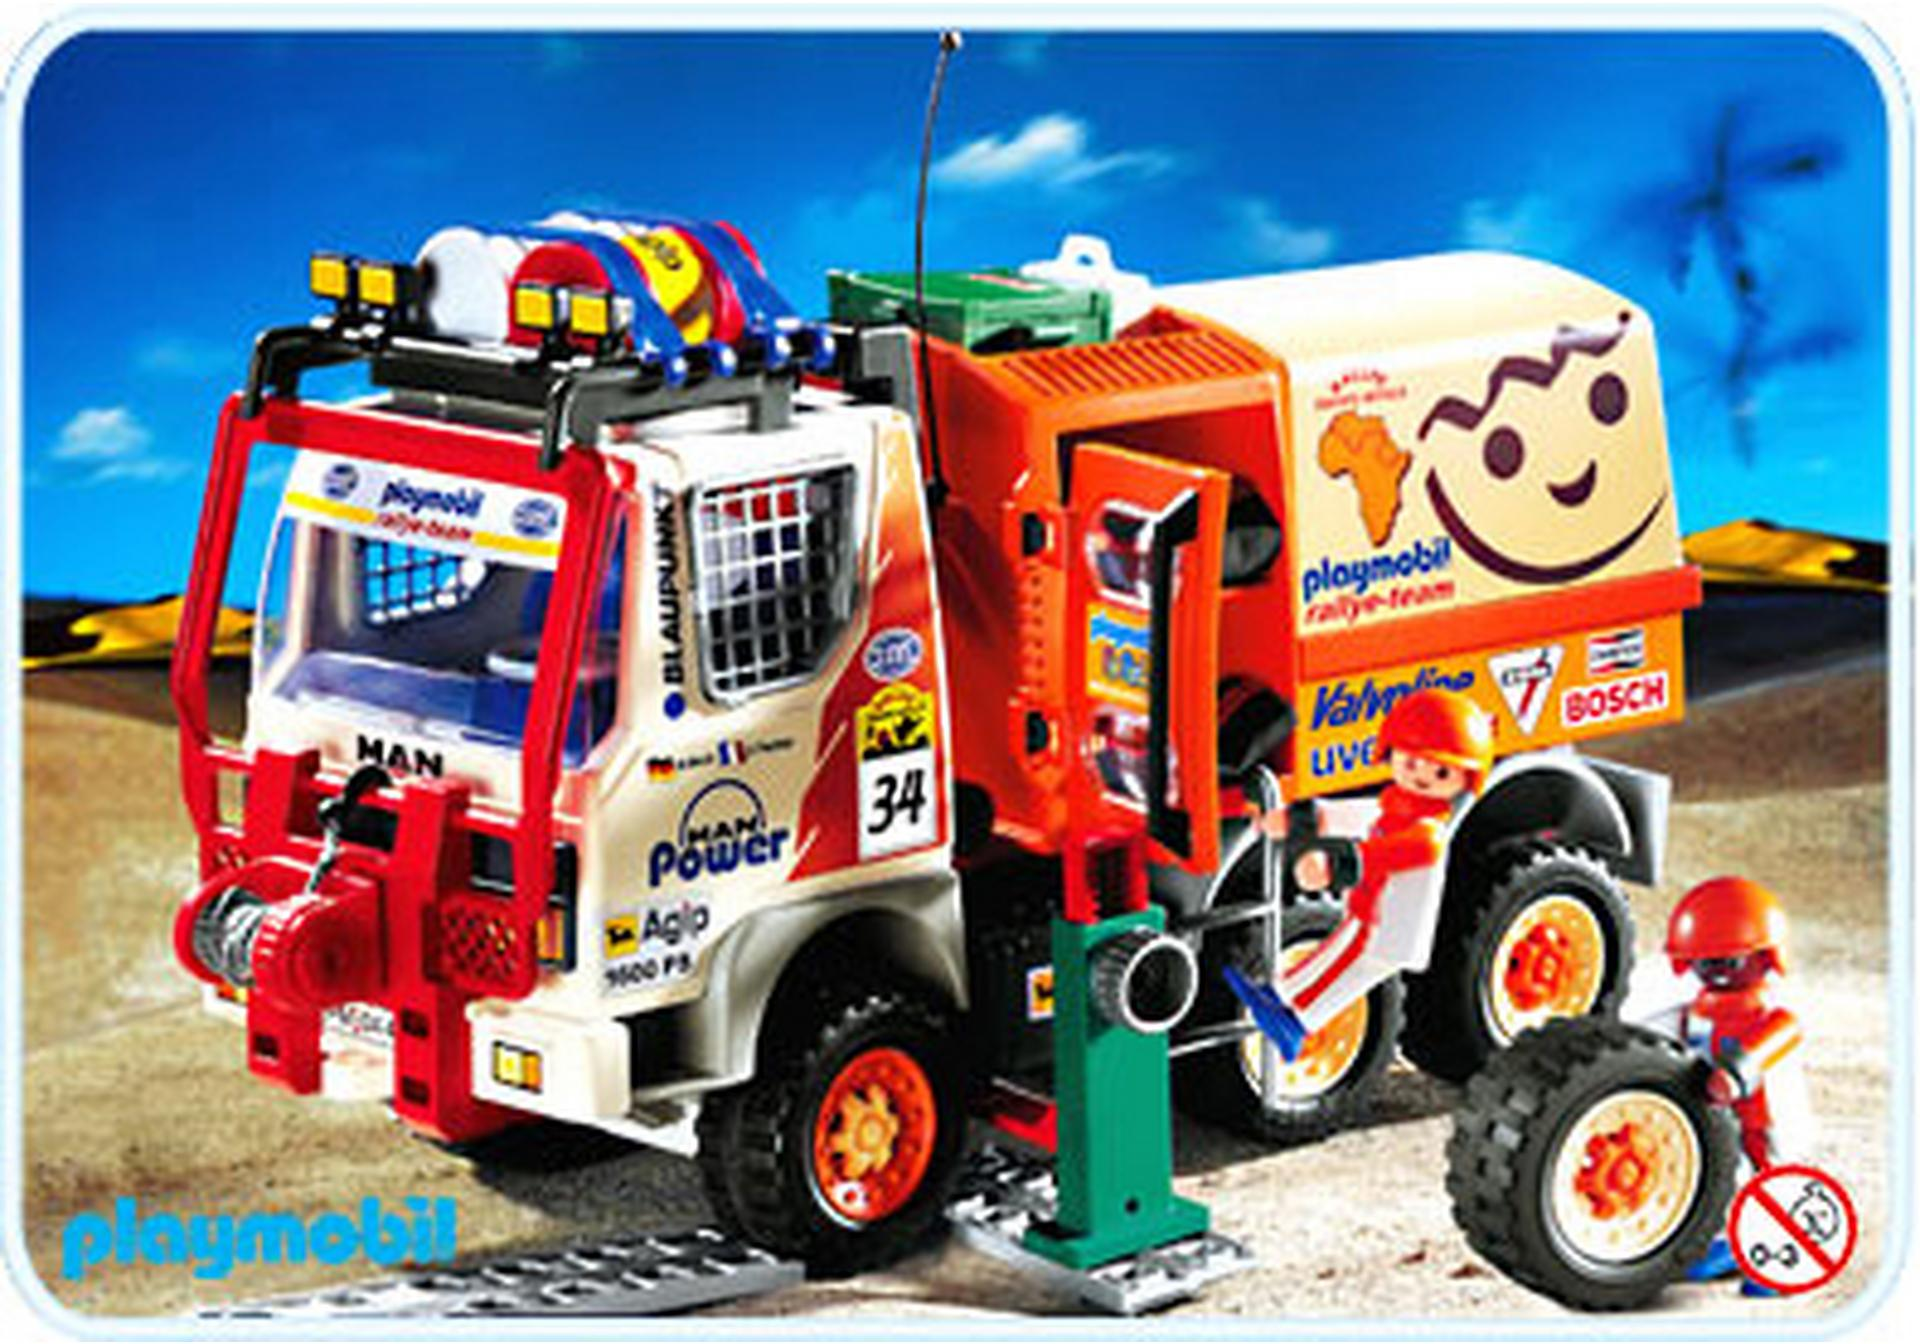 rallye truck 4420 a playmobil deutschland. Black Bedroom Furniture Sets. Home Design Ideas